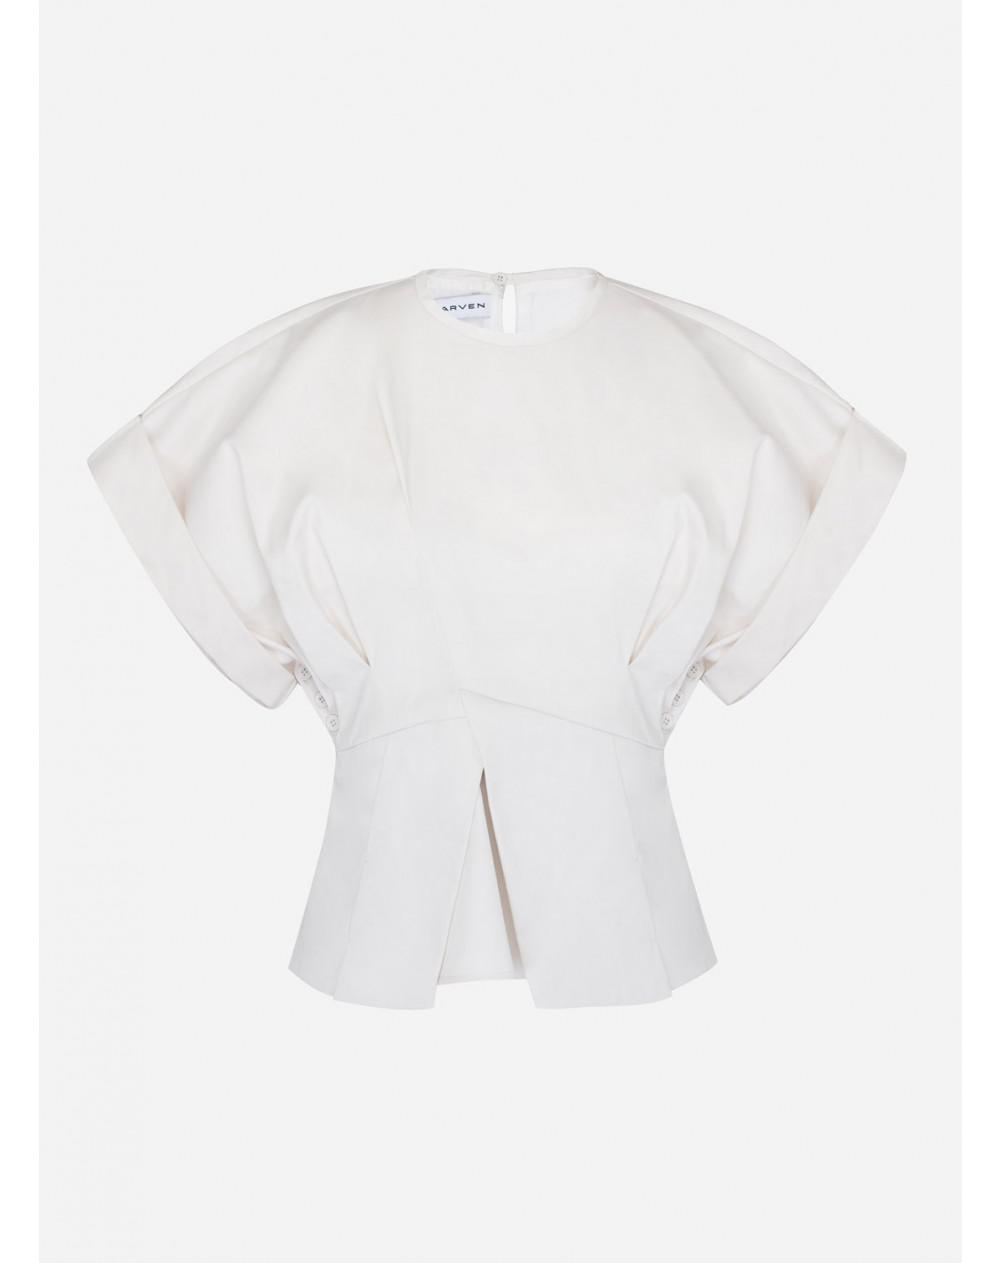 Carven product